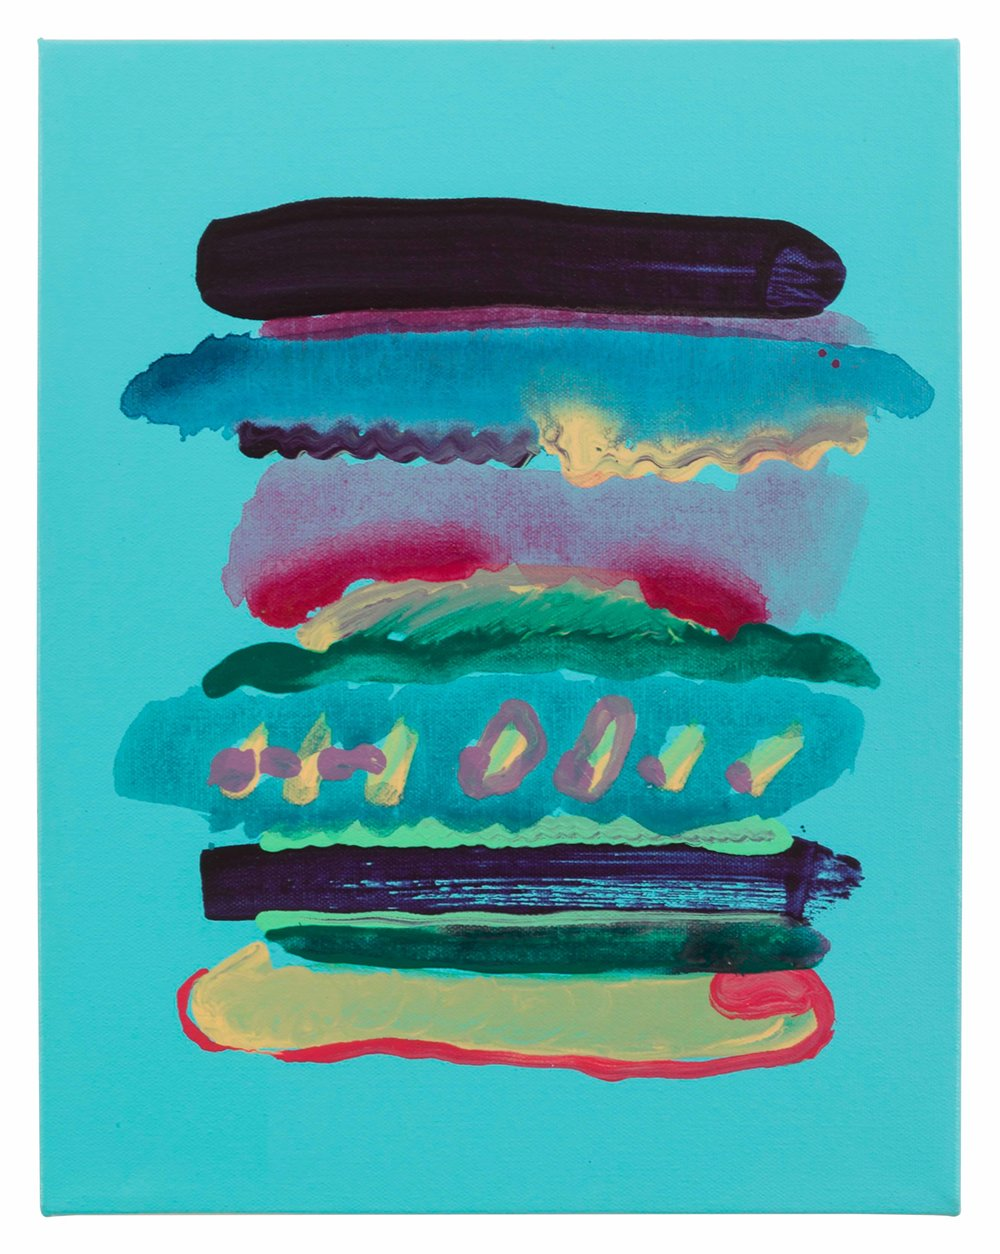 Drew Beattie and Ben Shepard  Small Sandwich on Warm Blue  2015 acrylic and spray paint on canvas 14 x 11 inches